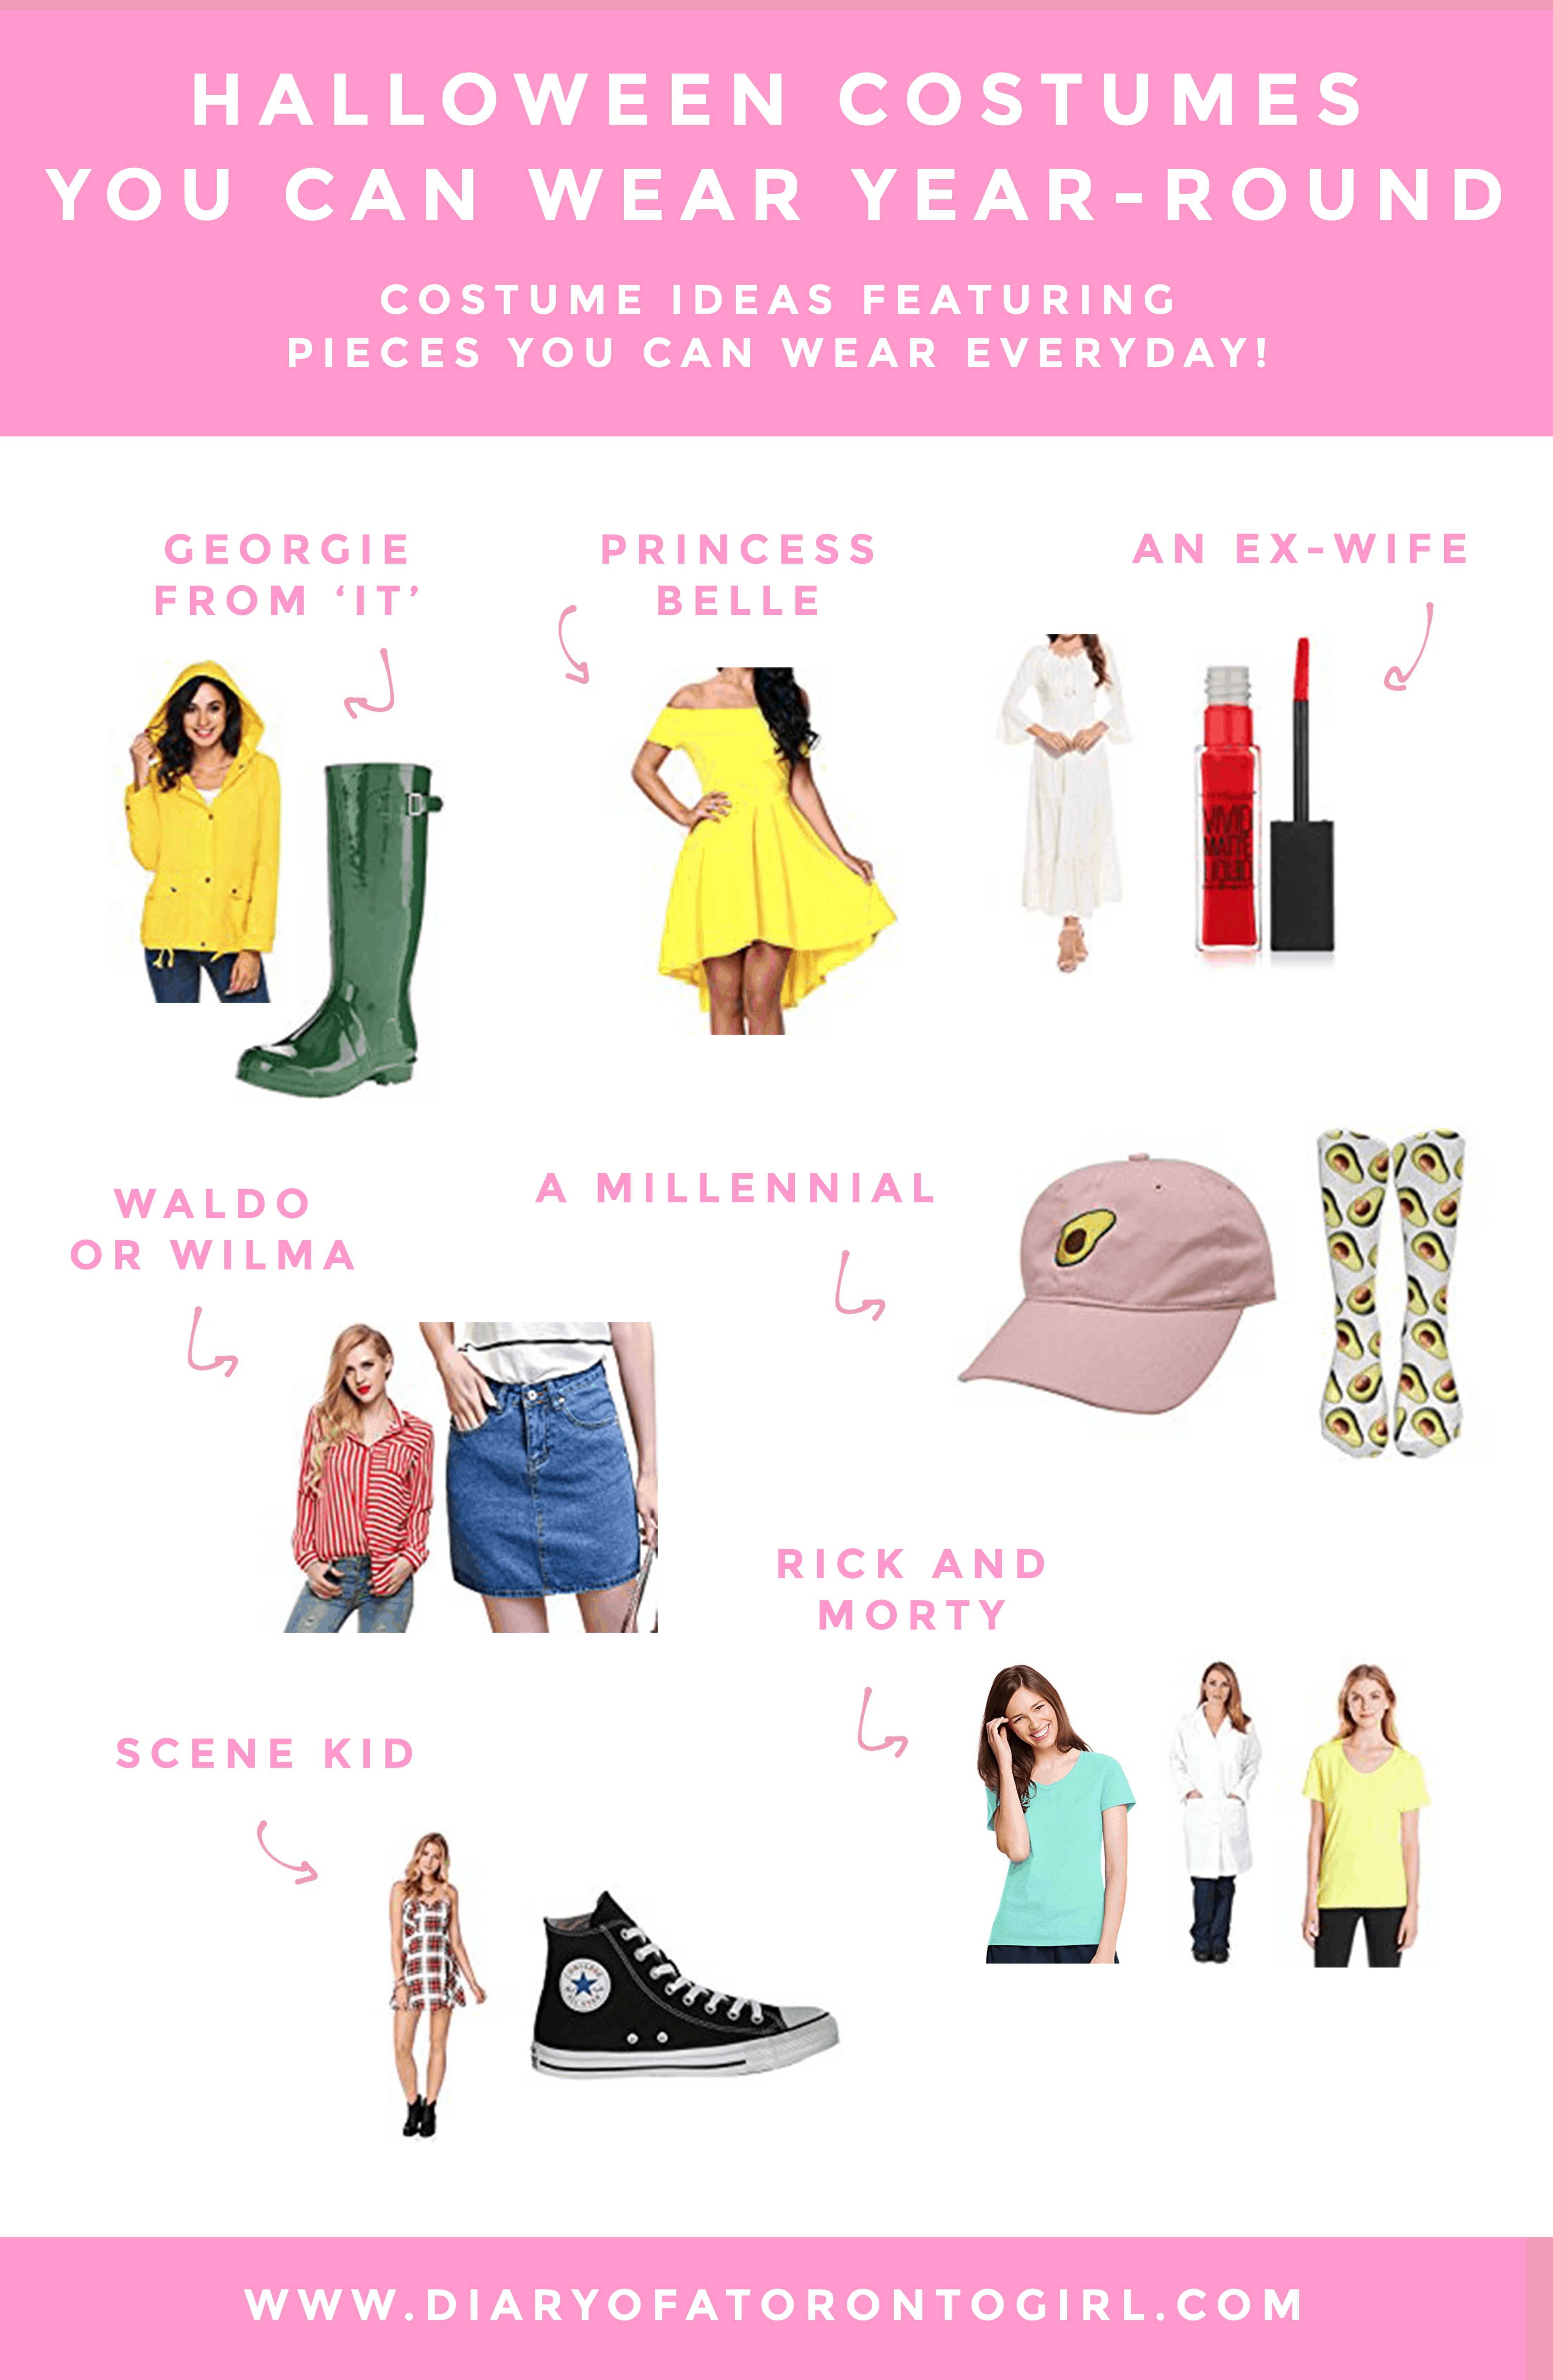 Halloween costumes you can wear all year-round | simple and easy Halloween costume ideas | costume ideas using clothing pieces you already have in your closet | Diary of a Toronto Girl, a Canadian lifestyle blog